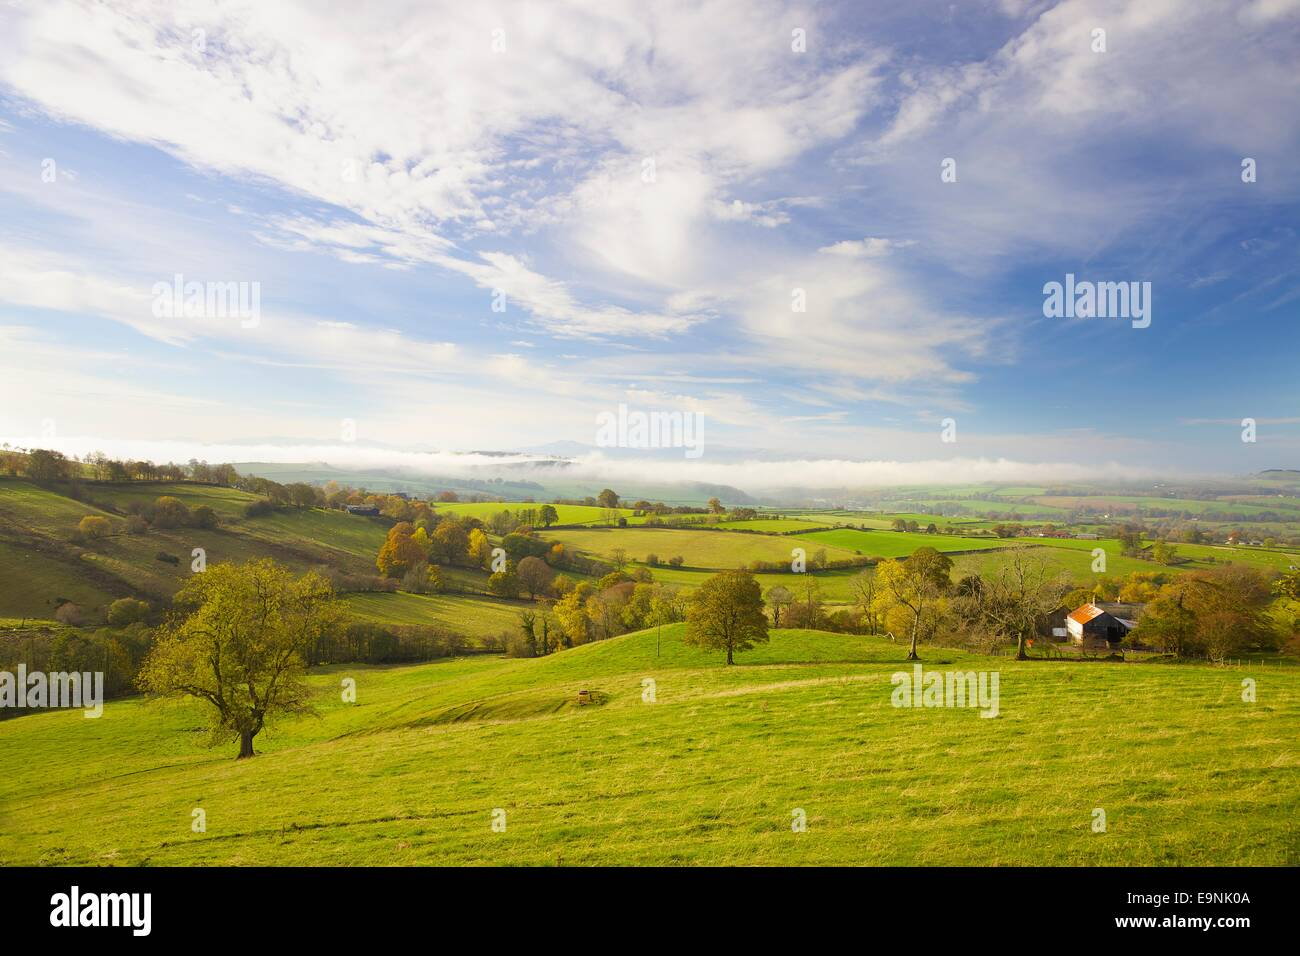 Tree in rural evening scene, Eden Valley in Cumbria, near Ainstable looking towards The Lake District. Autumn Stock Photo